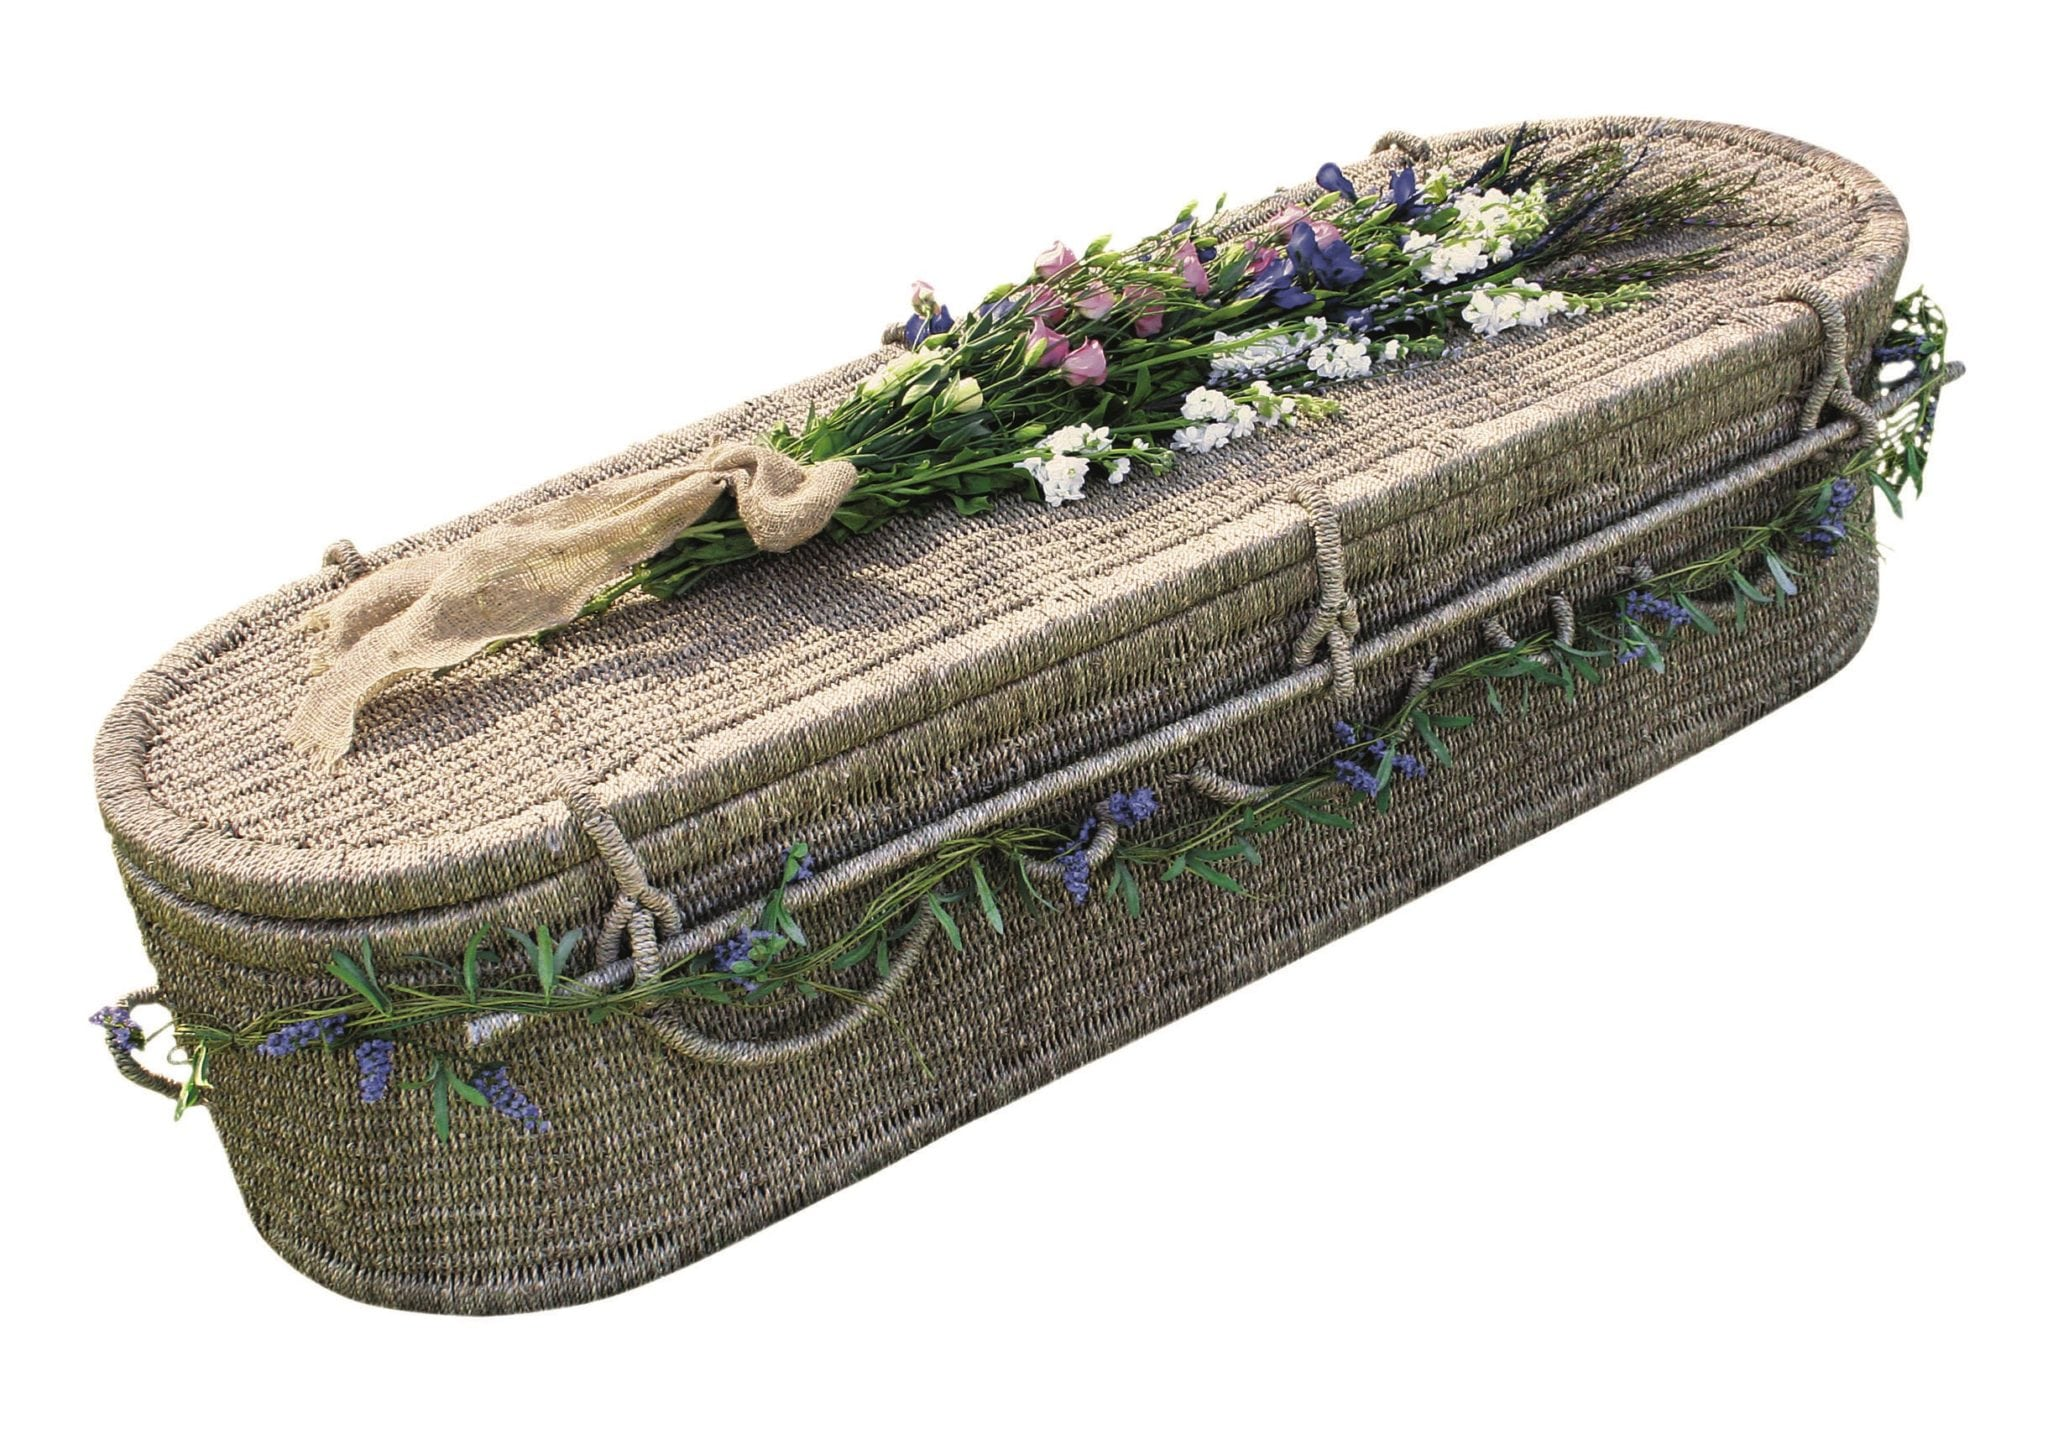 Eco friendly coffin with flowers on top